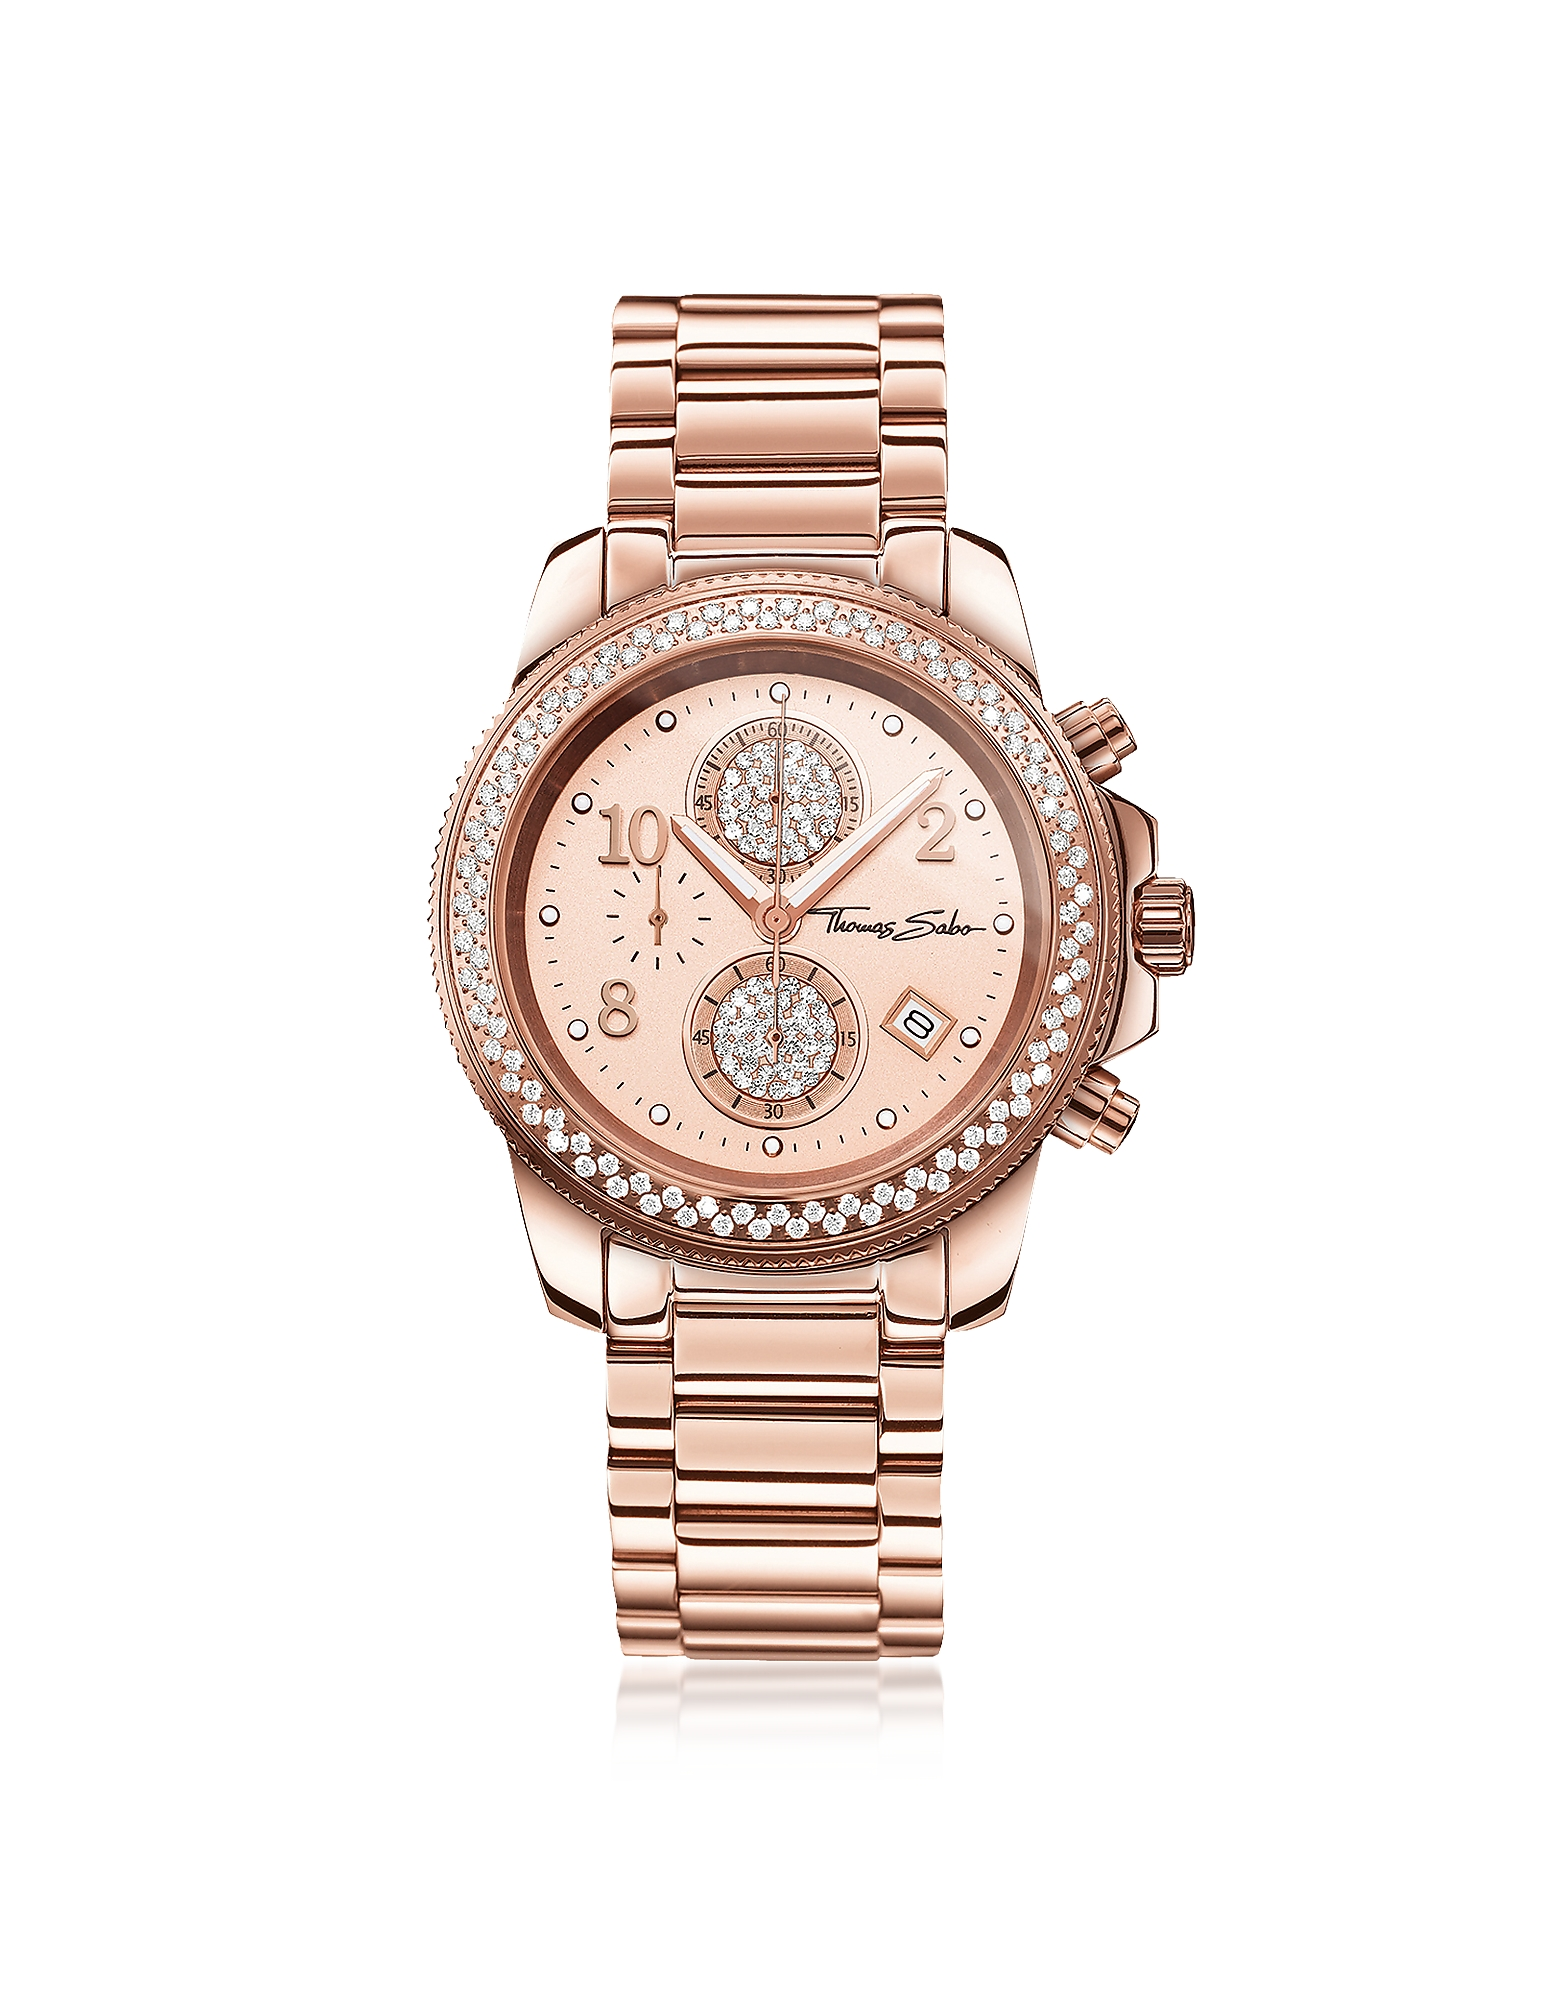 Thomas Sabo  Women's Watches Glam Chrono Rose Gold Stainless Steel Women's Watch w/Crystals